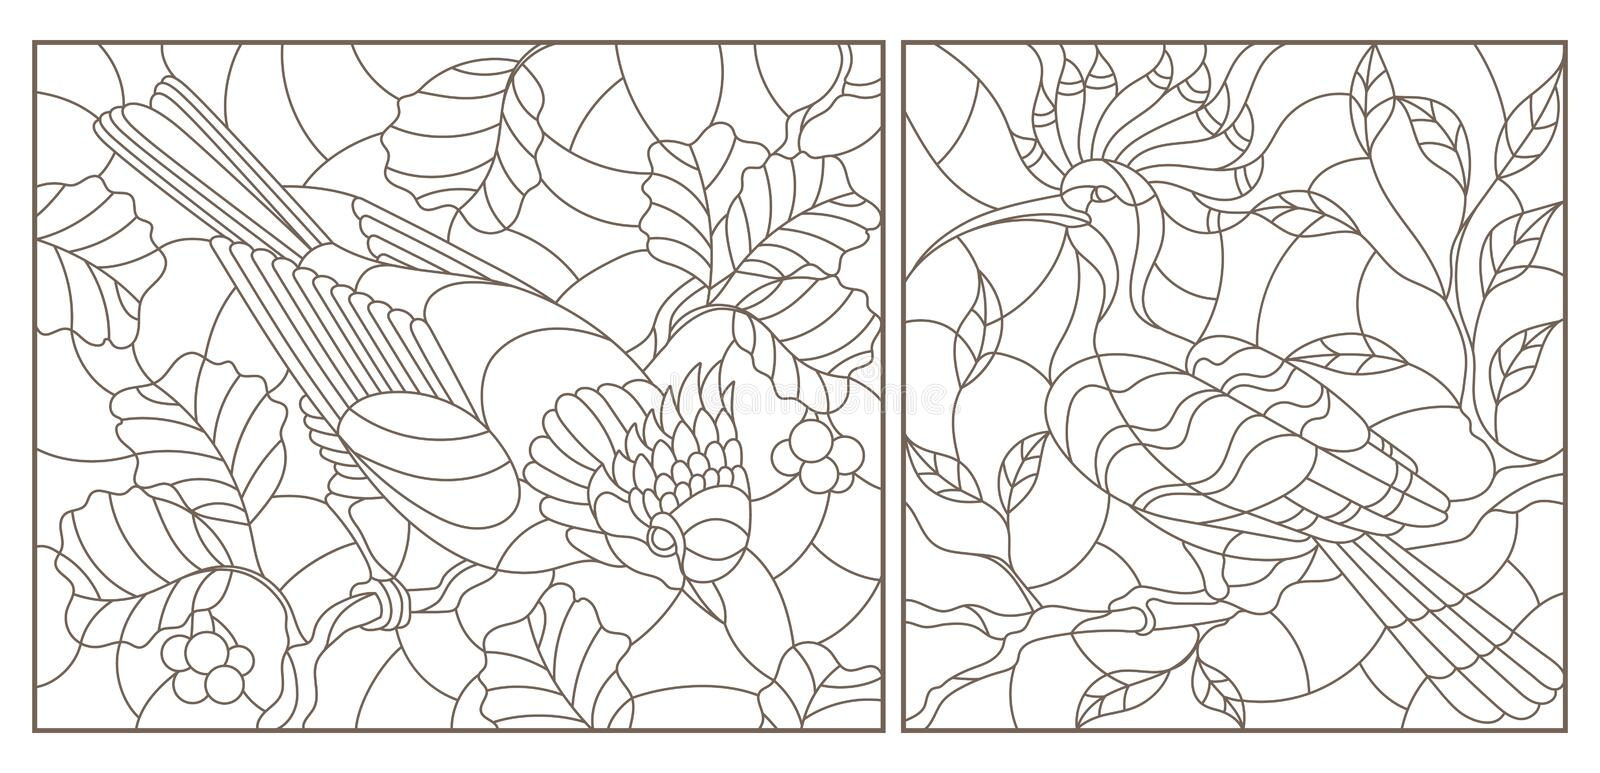 Contour set with illustrations of stained-glass windows with birds against branches of a tree and leaves , dark contours on a wh vector illustration